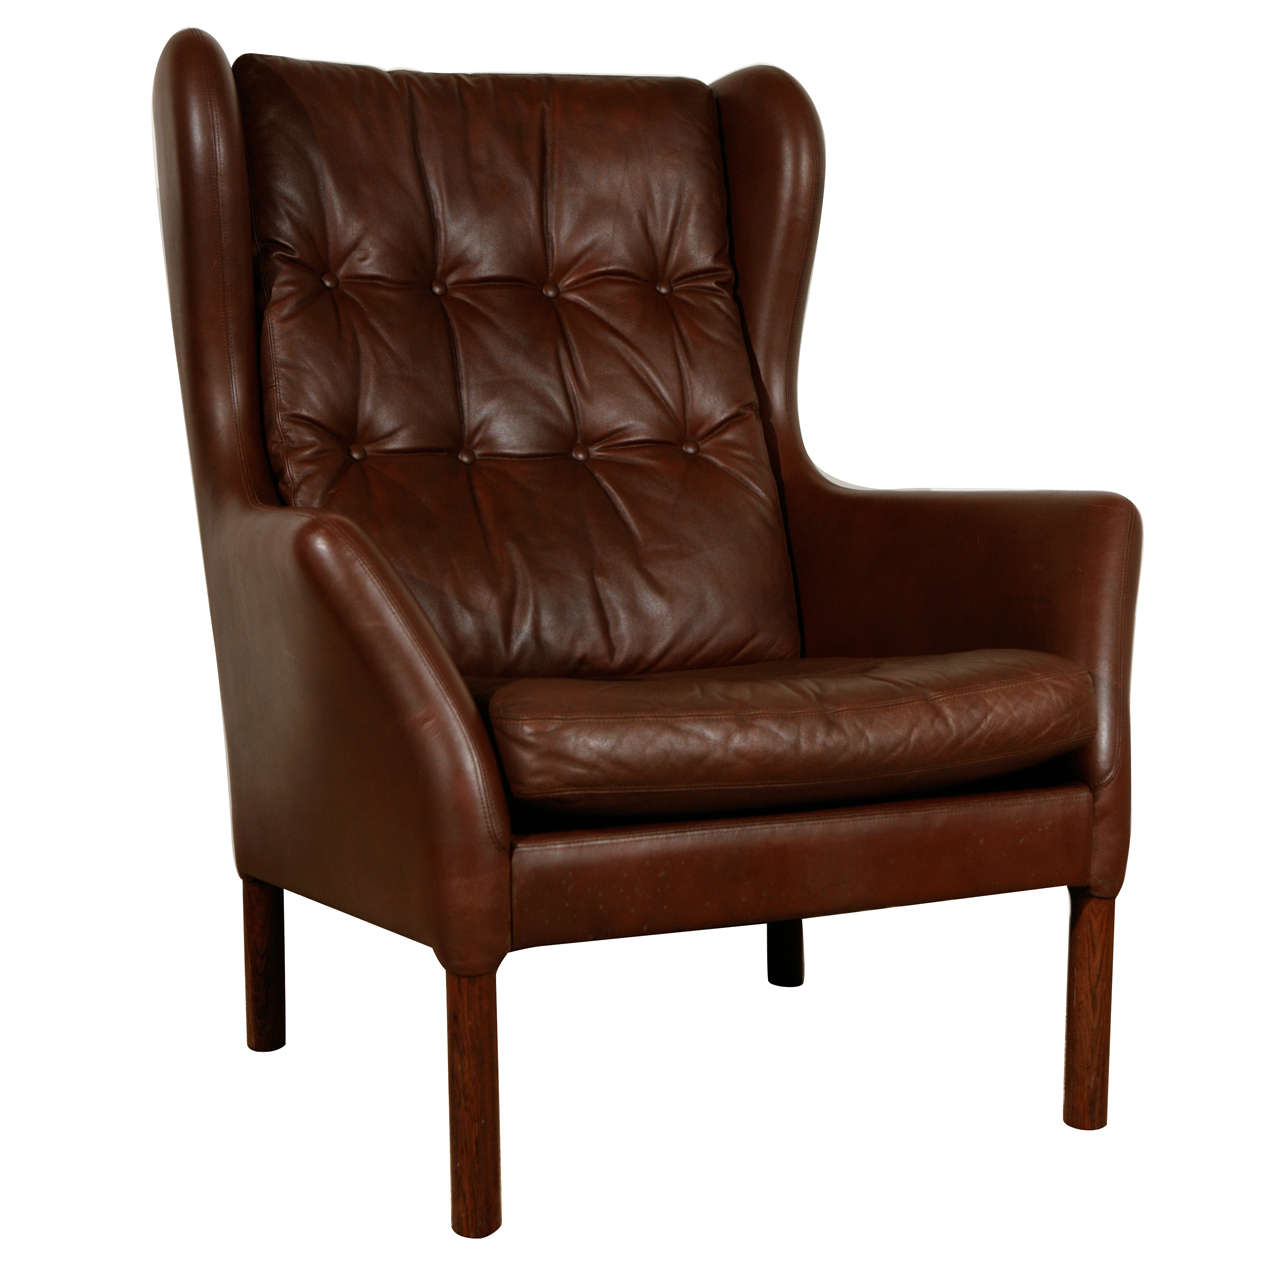 Leather Wing Back Chair Vintage Leather Wingback Chair At 1stdibs